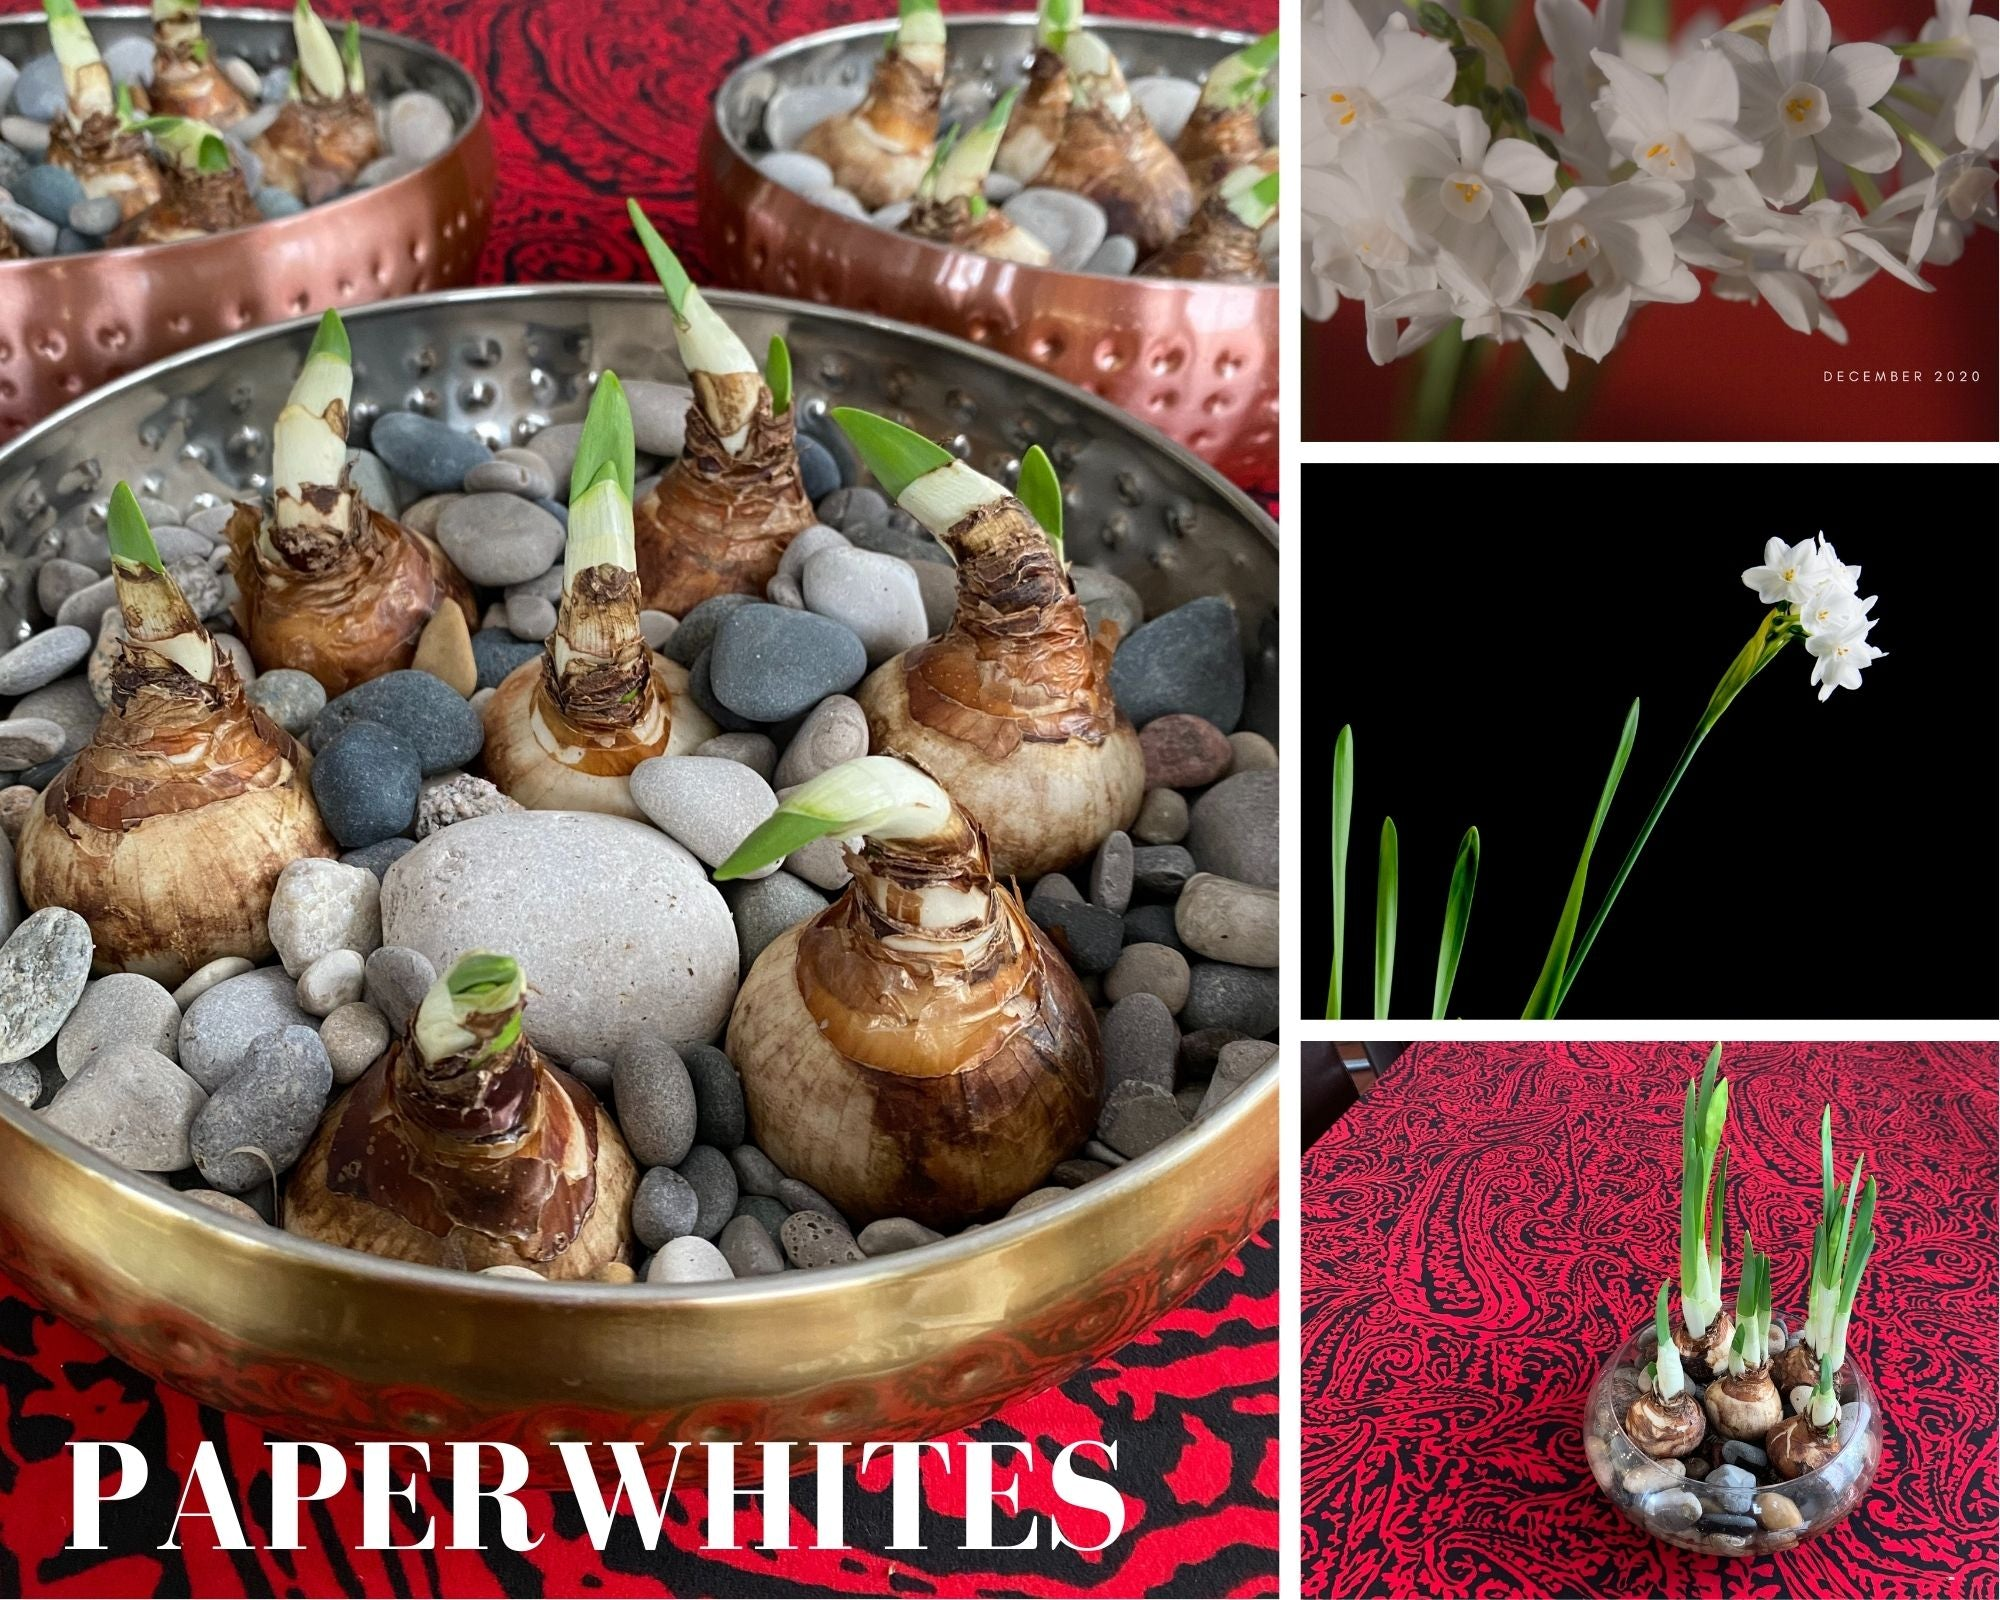 Paperwhites with free local delivery Wed Dec 23